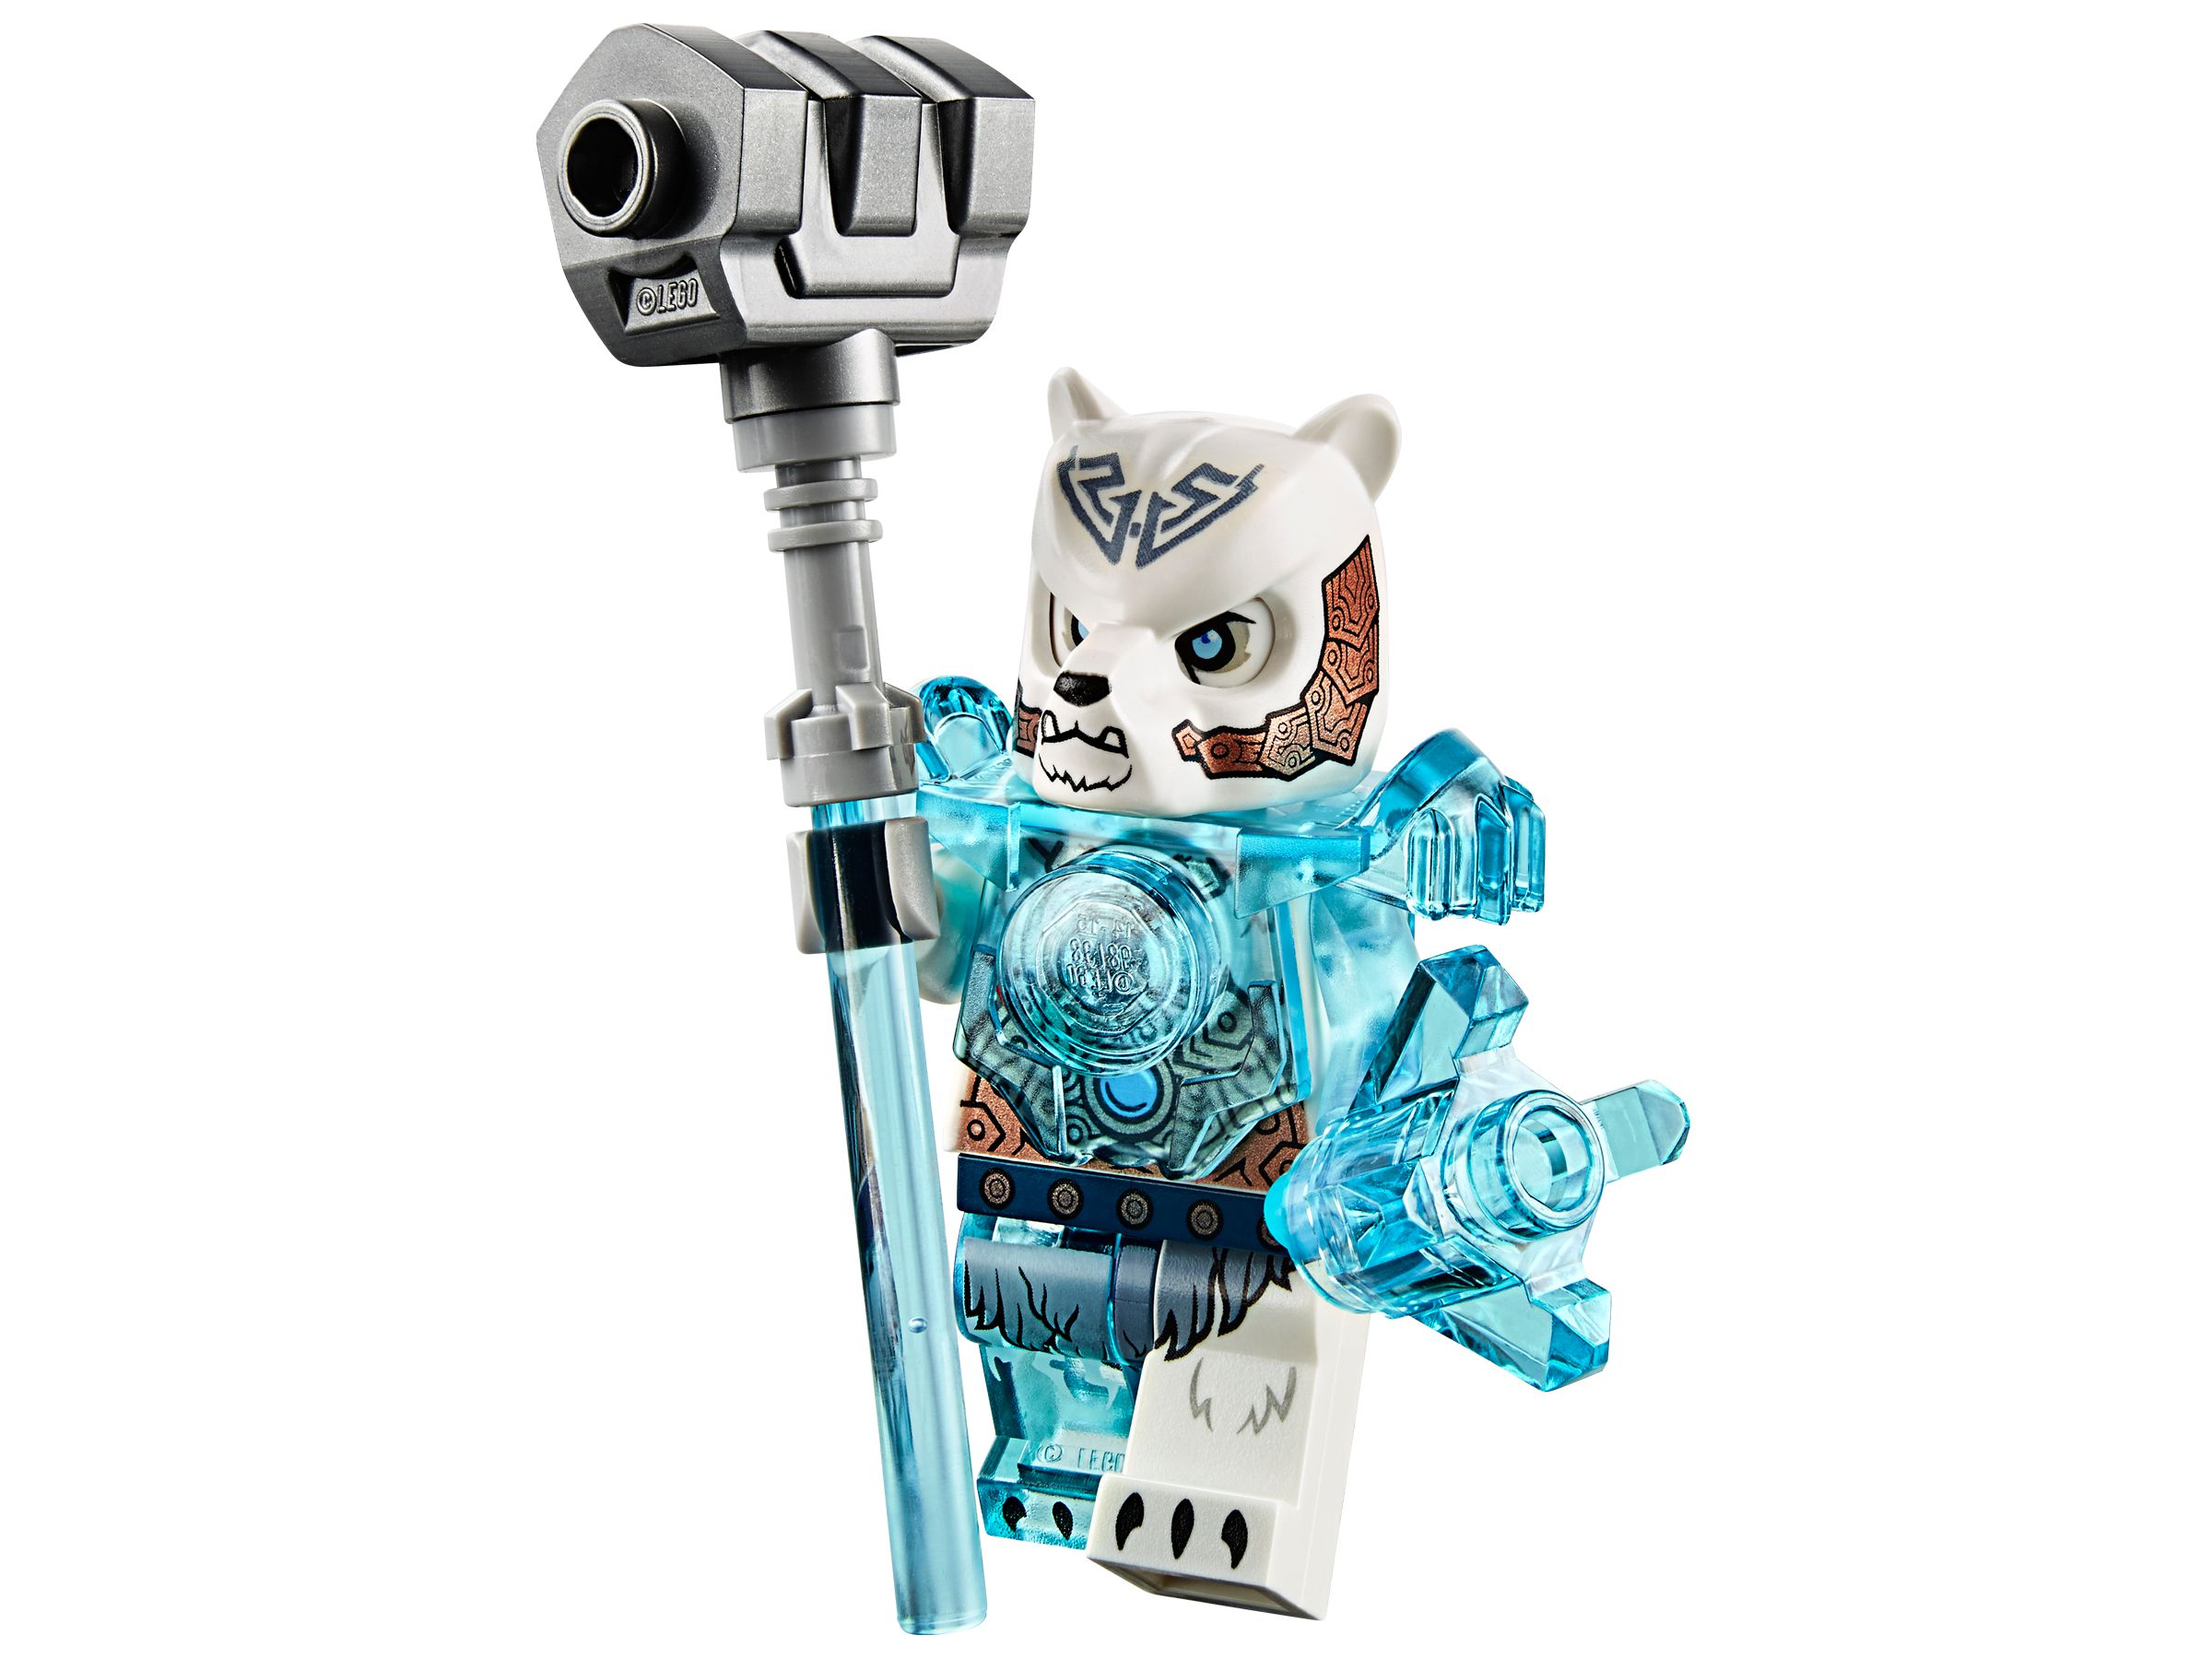 LEGO Legends Of Chima 70230 Eisbärstamm-Set LEGO_70230_alt4.jpg